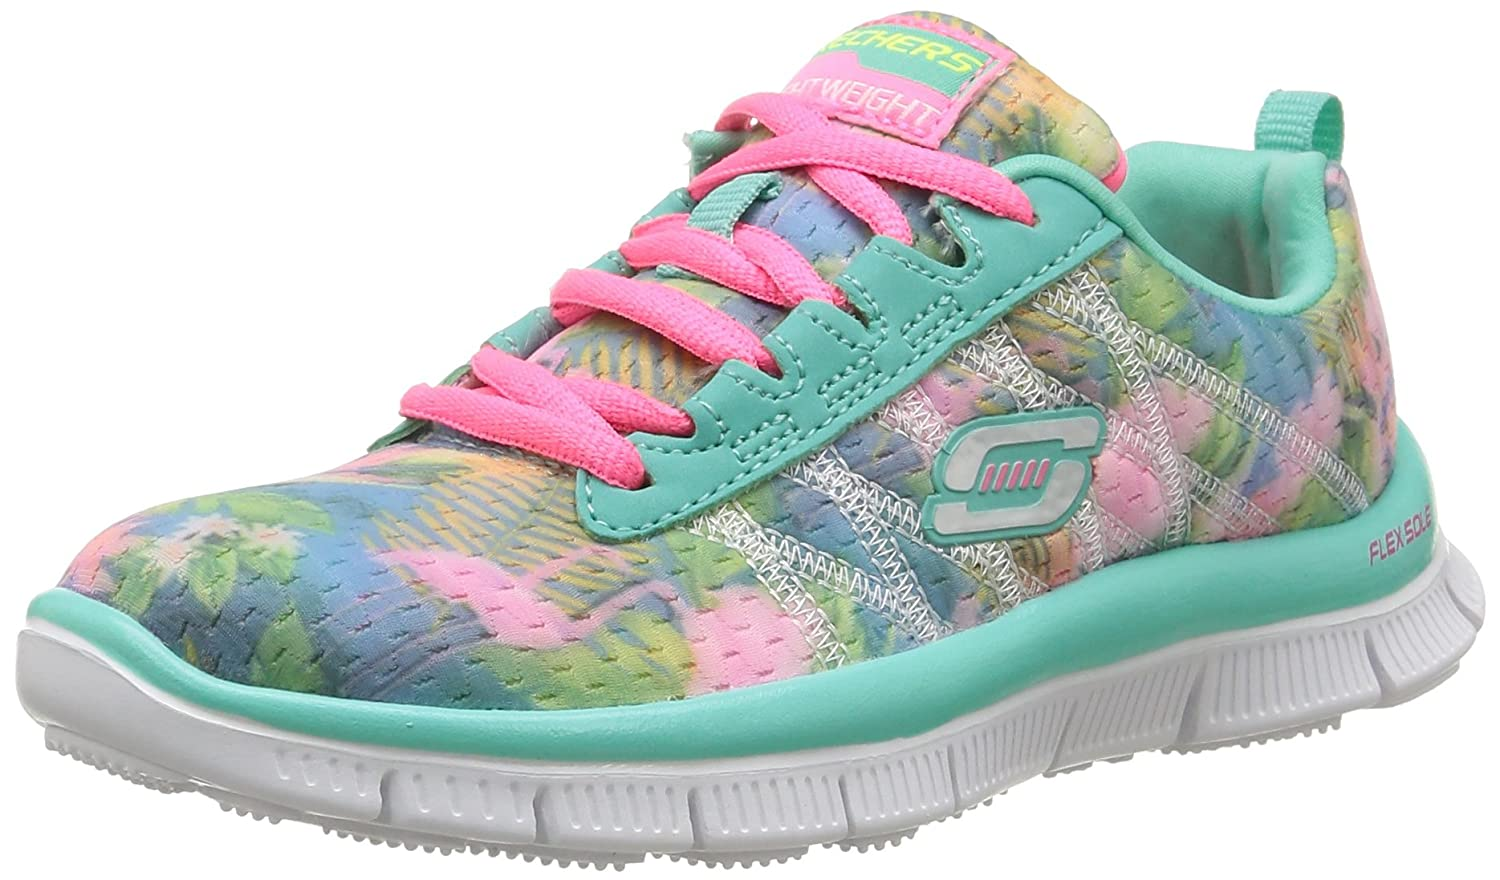 1d4031ce9043c Skechers Skech Appeal Floral Bloom, Girls' Multisport Outdoor Shoes: Amazon. co.uk: Shoes & Bags